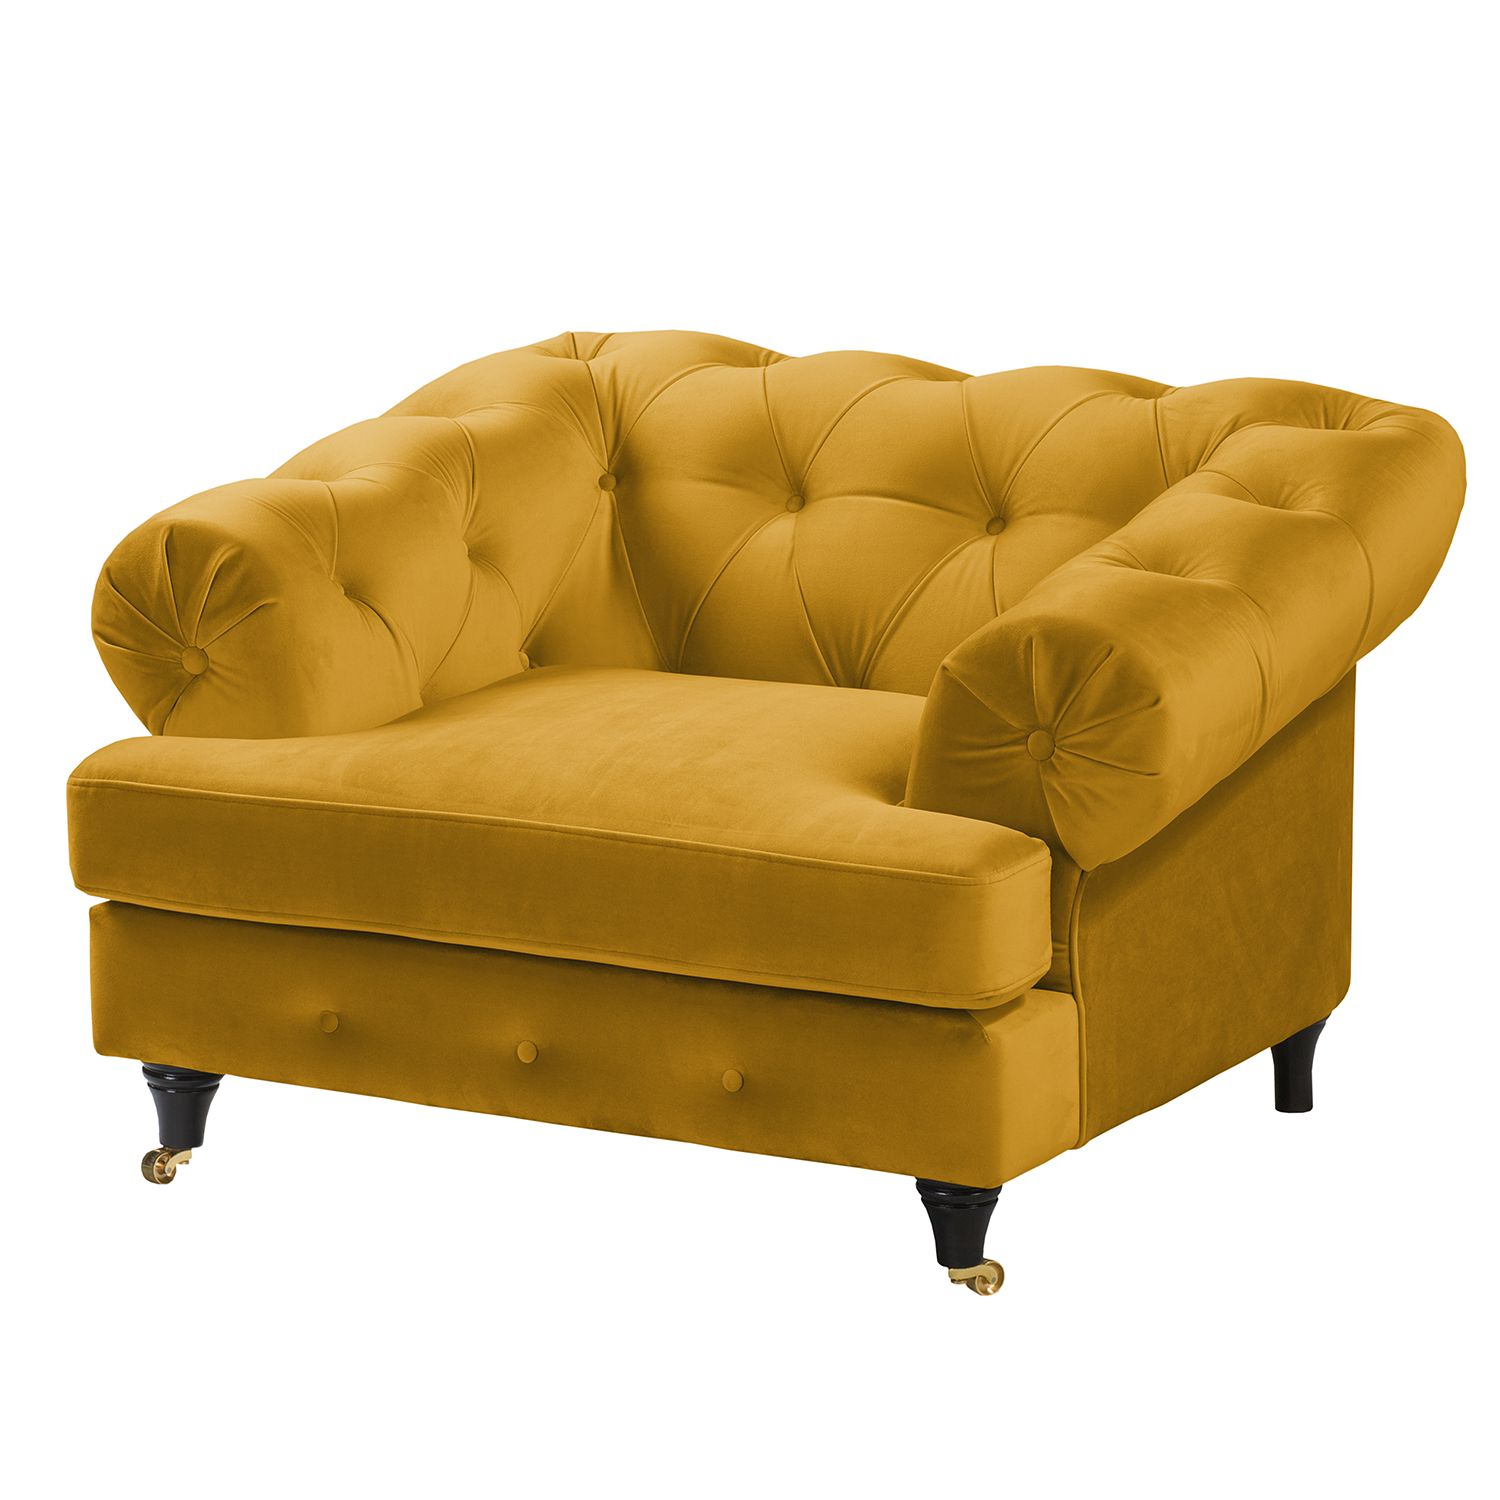 fauteuil thory velours jaune moutarde jack and alice unbeaujouravecvous. Black Bedroom Furniture Sets. Home Design Ideas